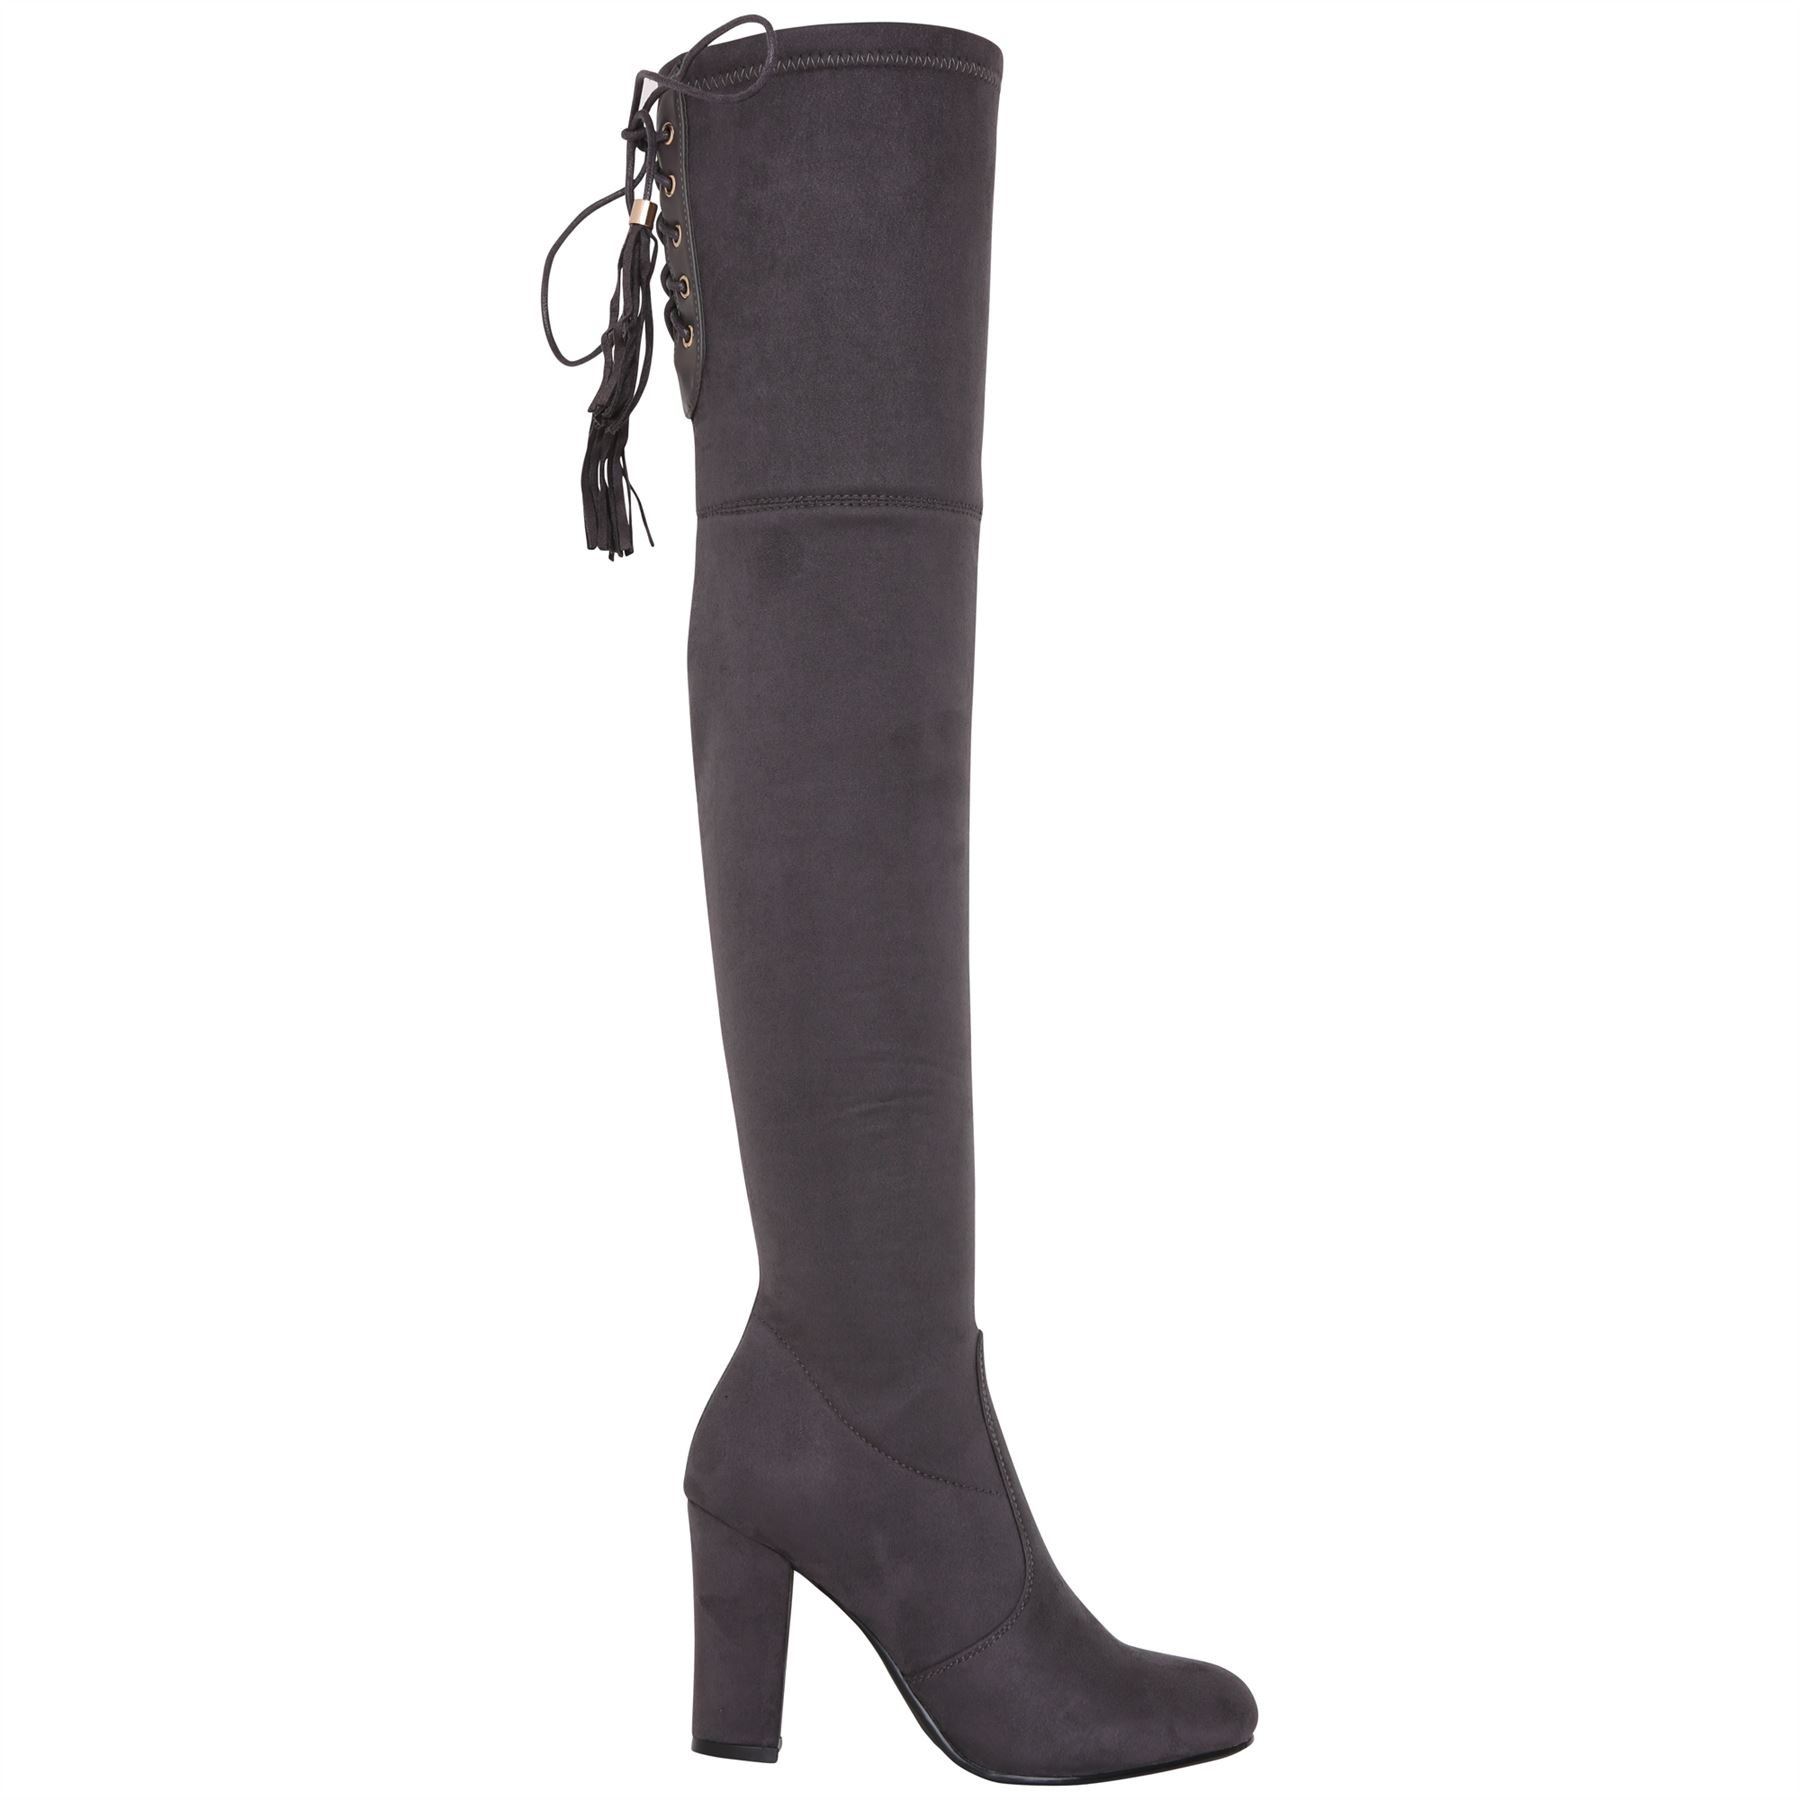 Womens-Over-Knee-High-Boots-Ladies-Low-Block-Heel-Riding-Stretch-Winter-Shoes miniatura 13